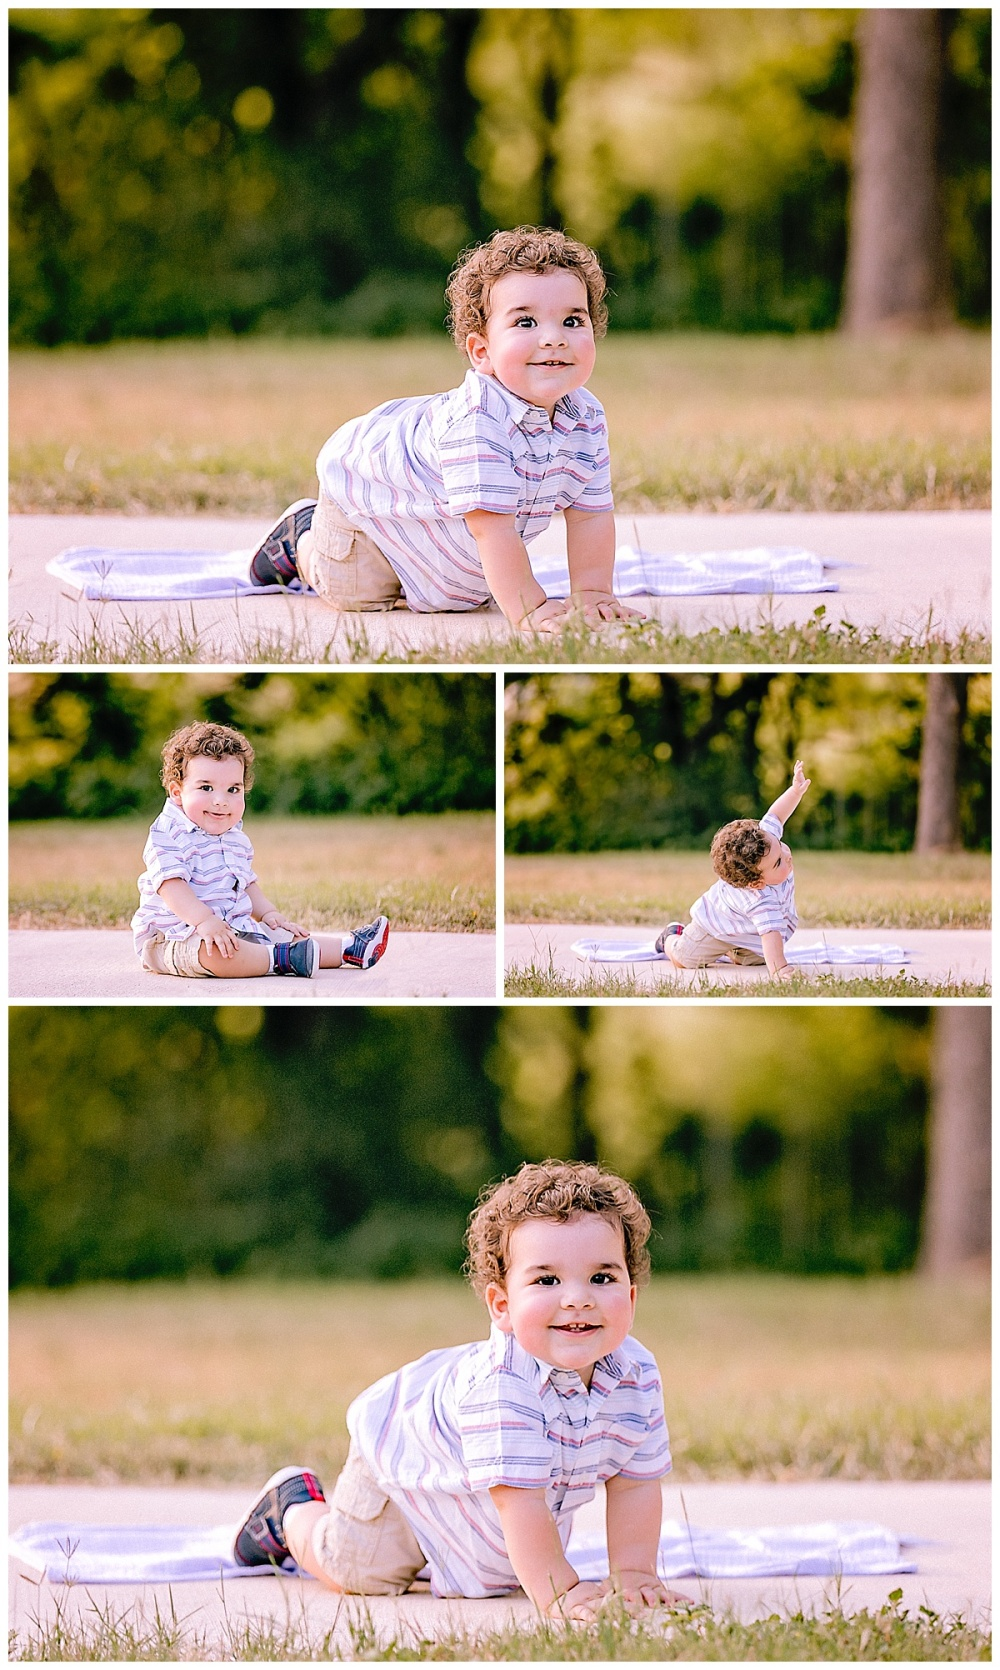 Carly-Barton-Photography-Birthday-Session-Schertz-Texas-Veterans-Park-1-year-family-photos-James_0006.jpg